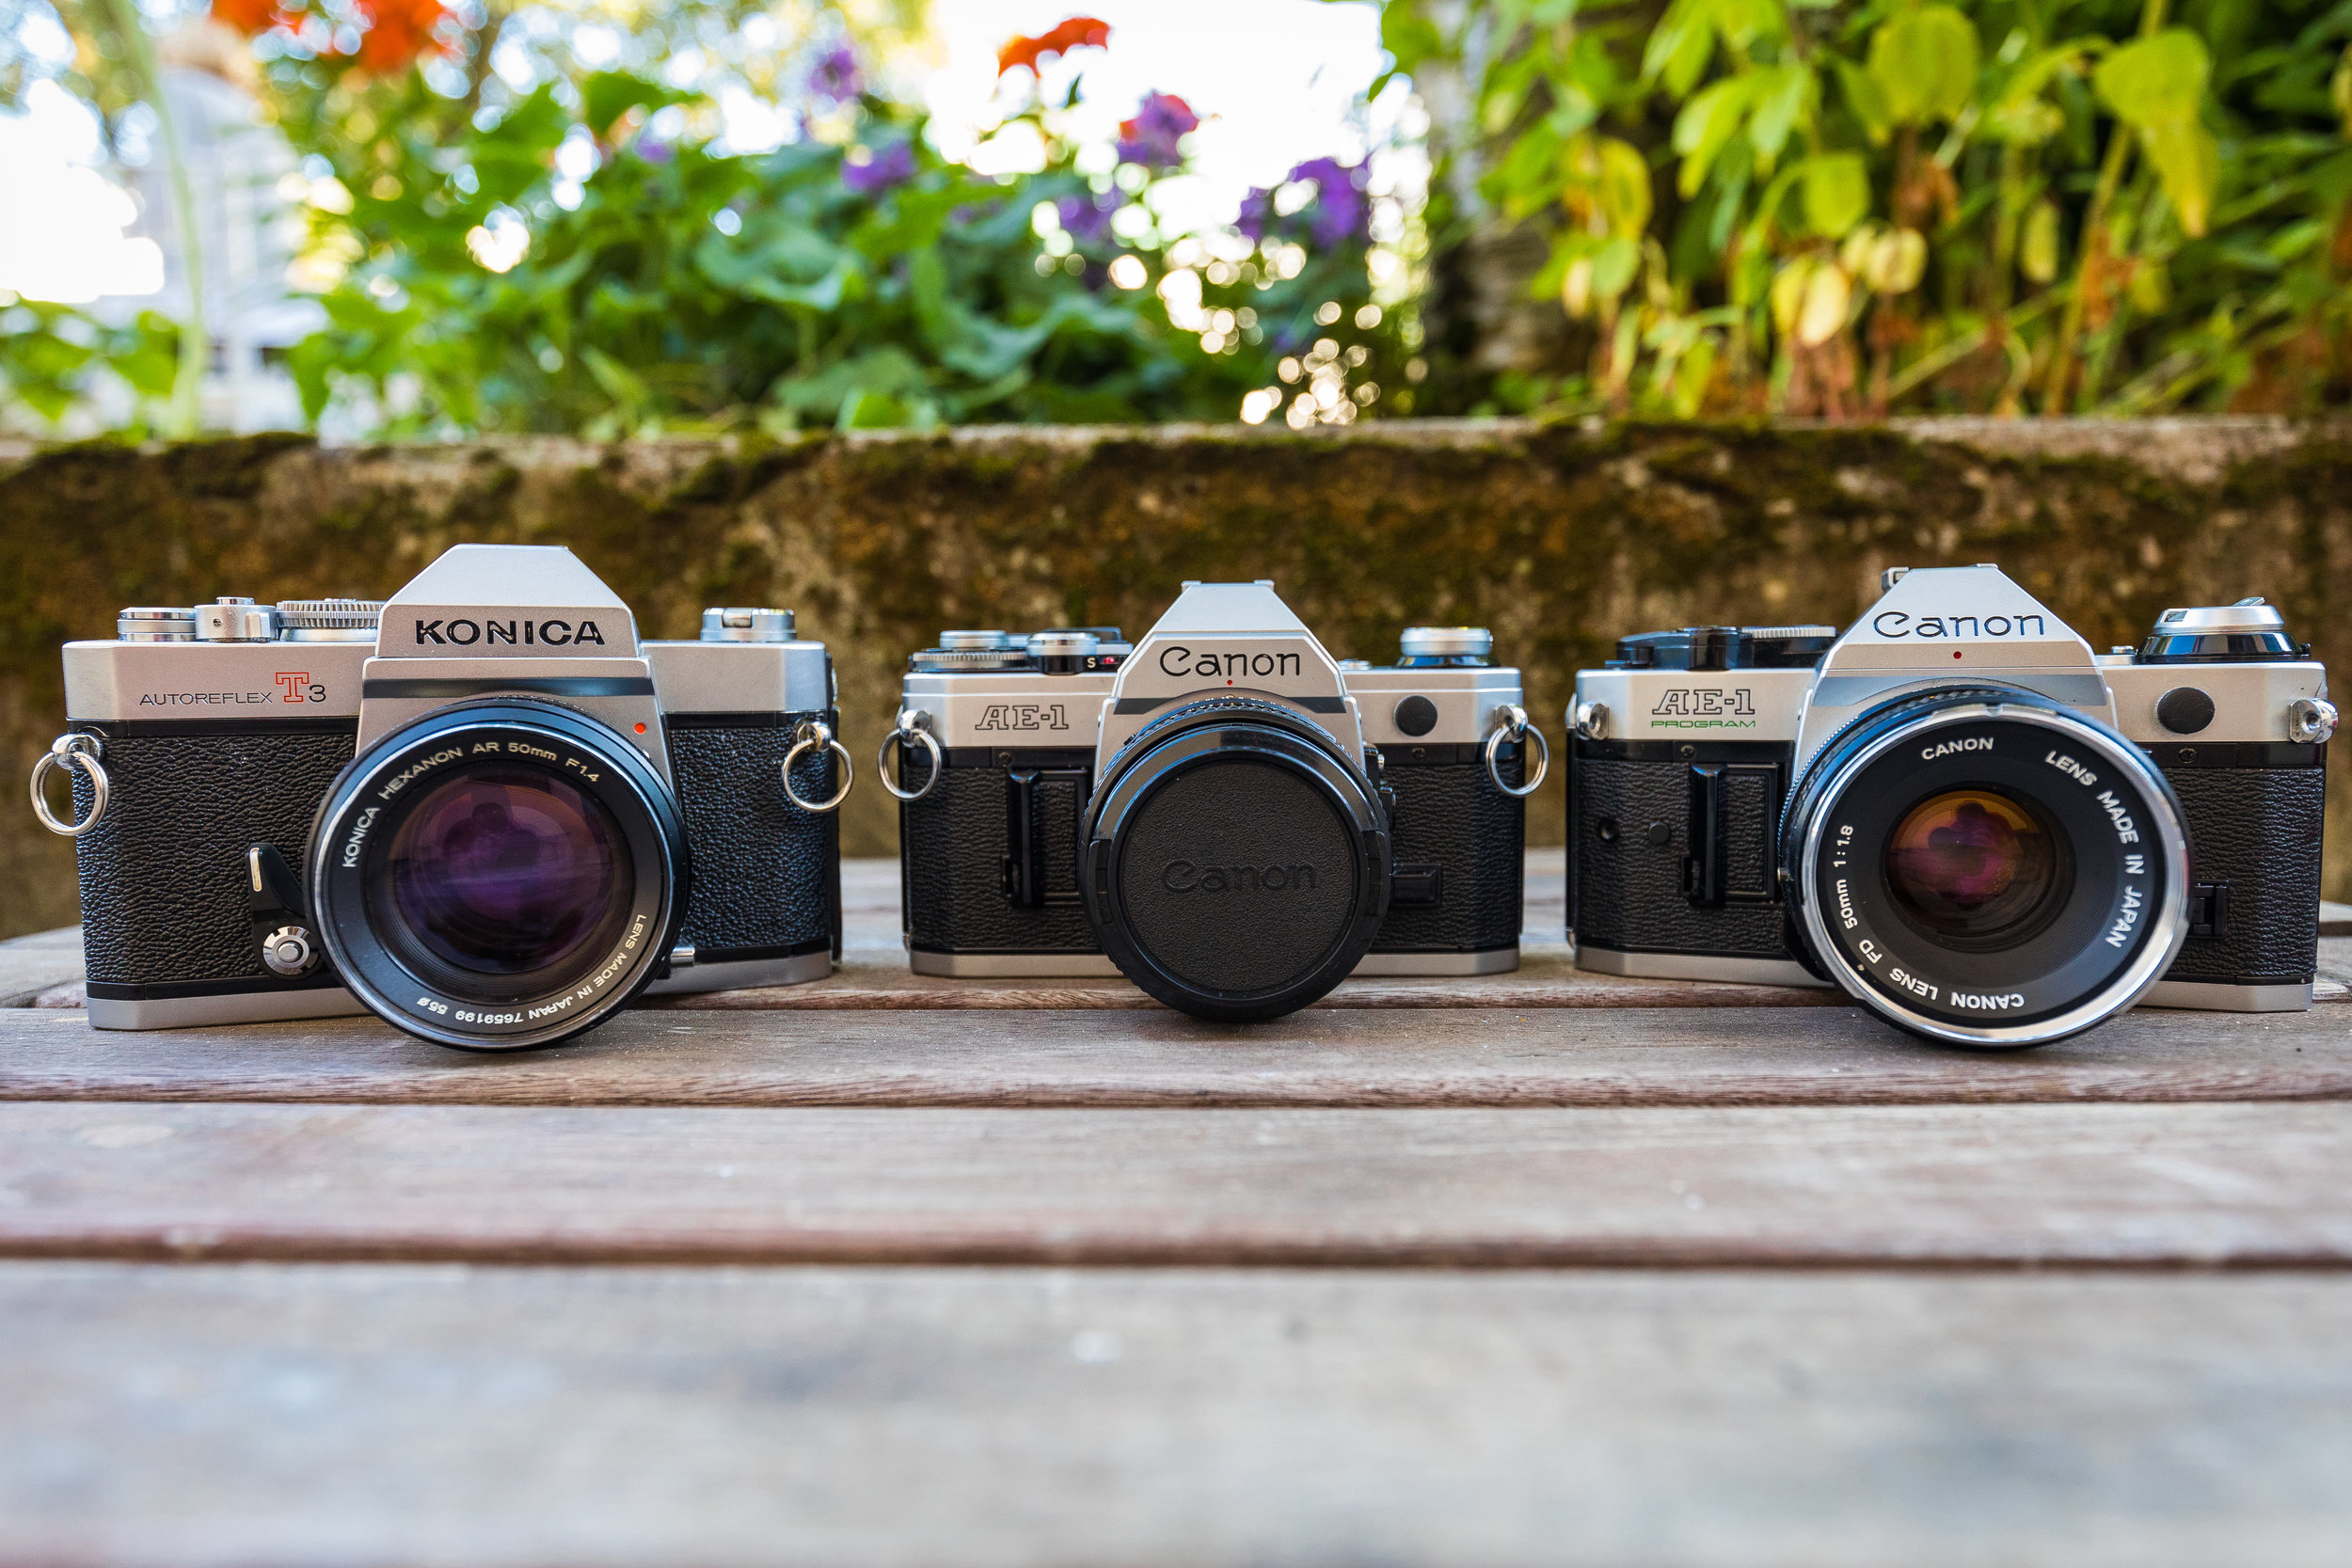 My 35mm SLR collection so far: Konica Autoreflex T3, Canon AE-1 and Canon AE-1 Program